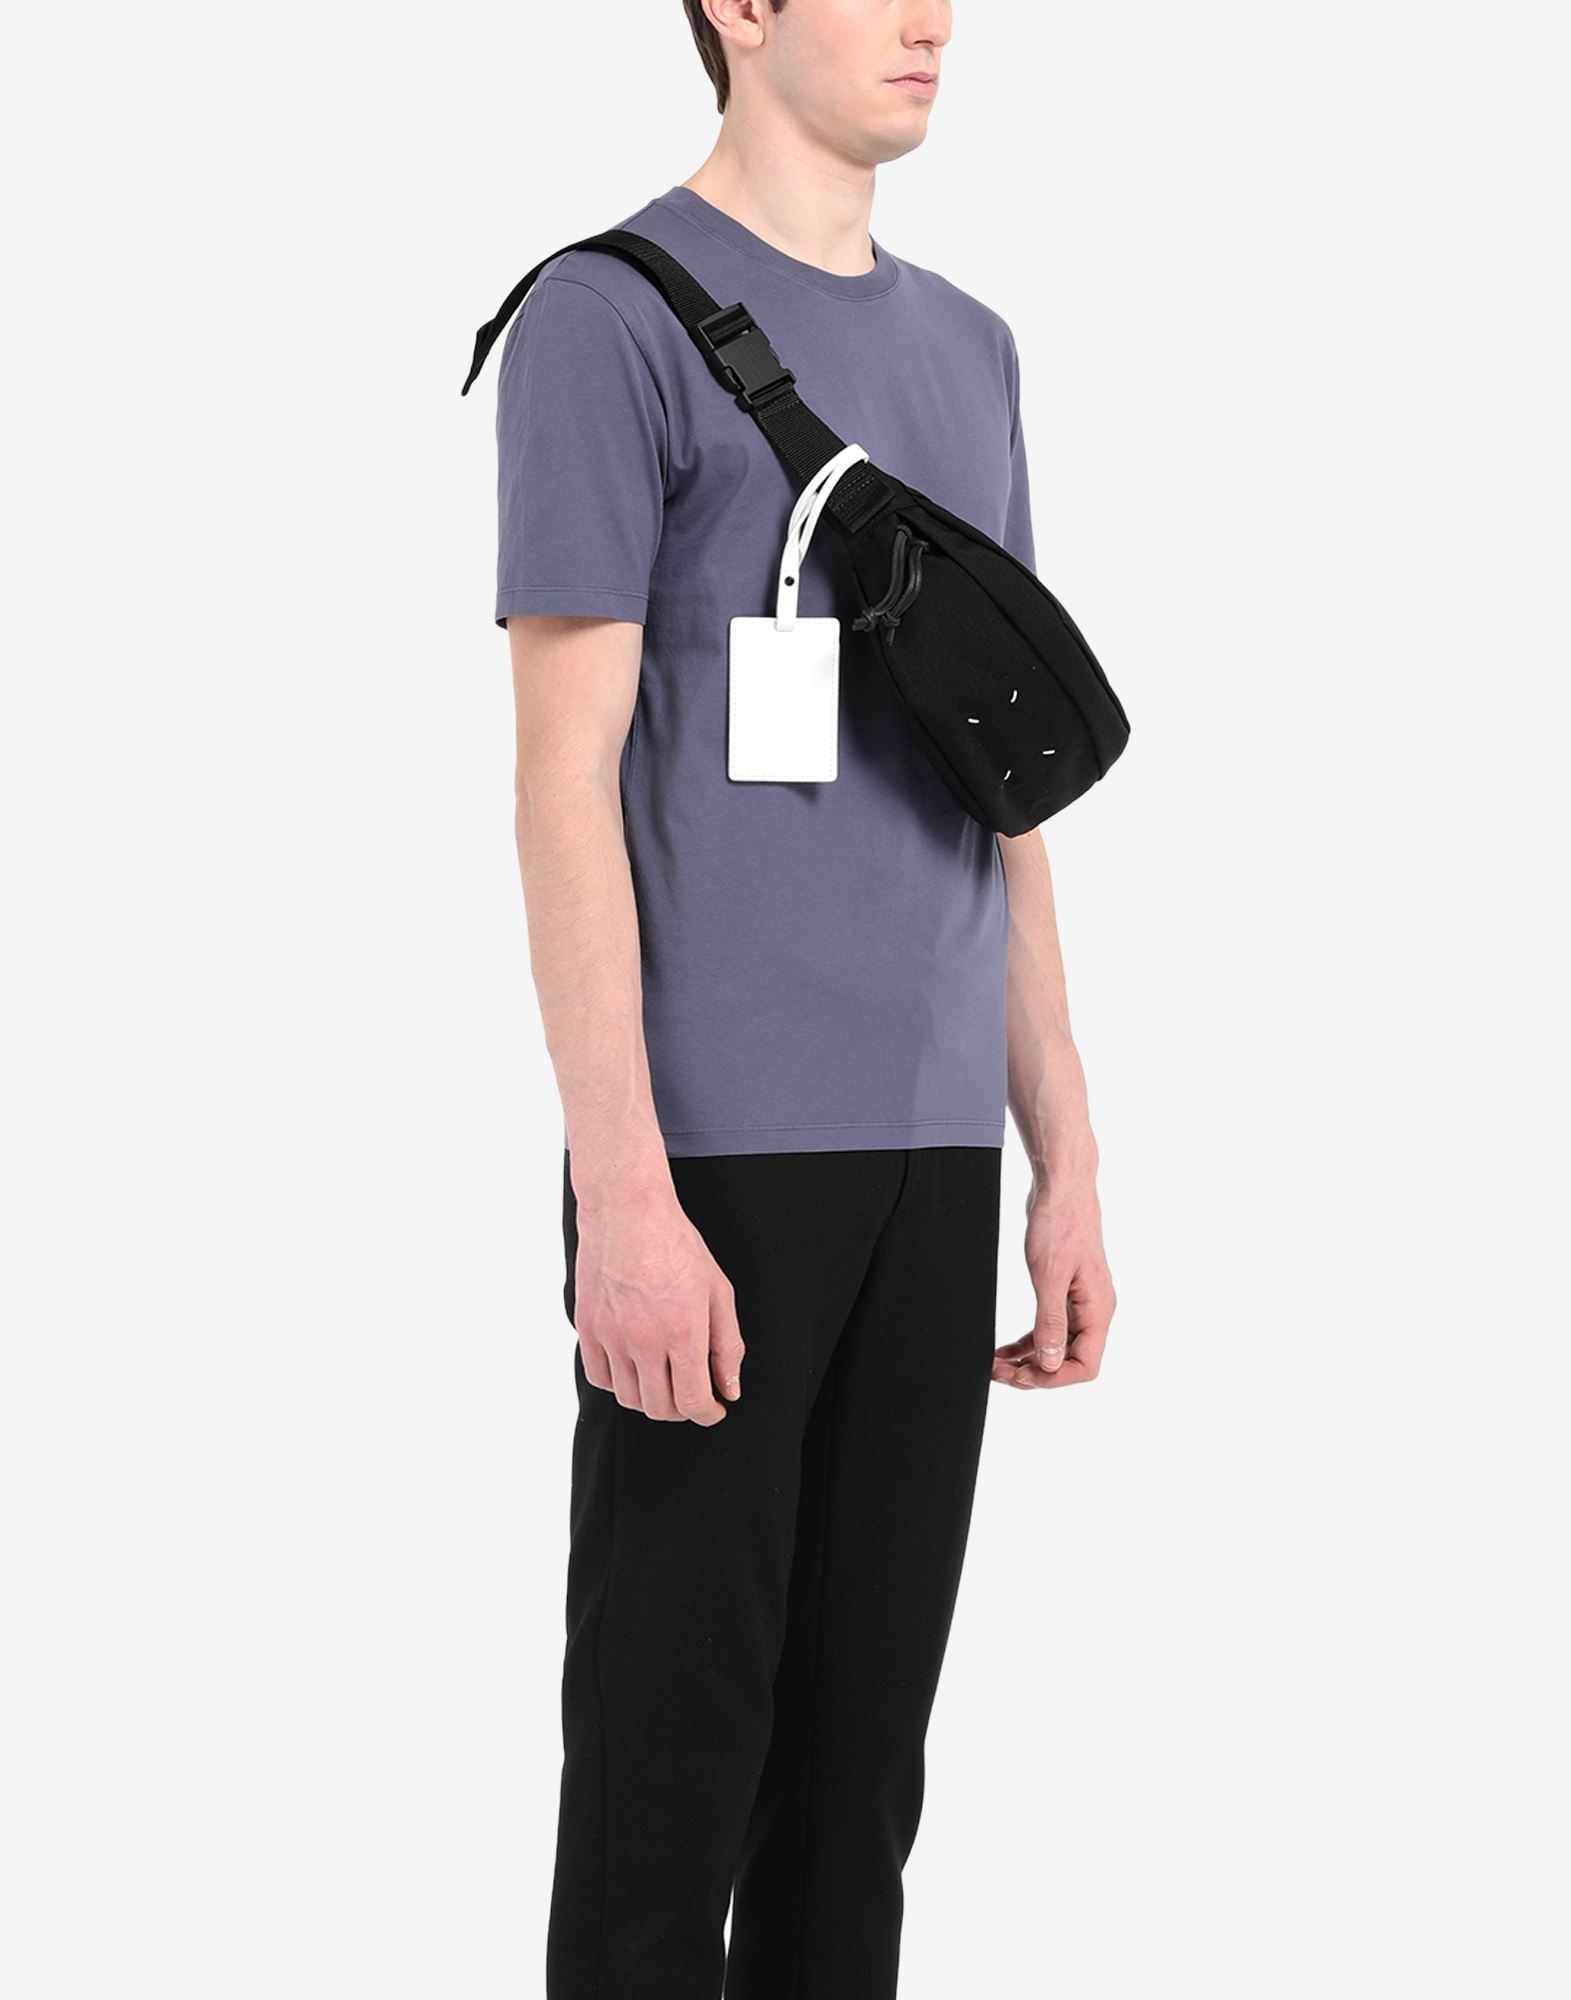 MAISON MARGIELA 4-STITCHES BUMBAG Bum bag Man b